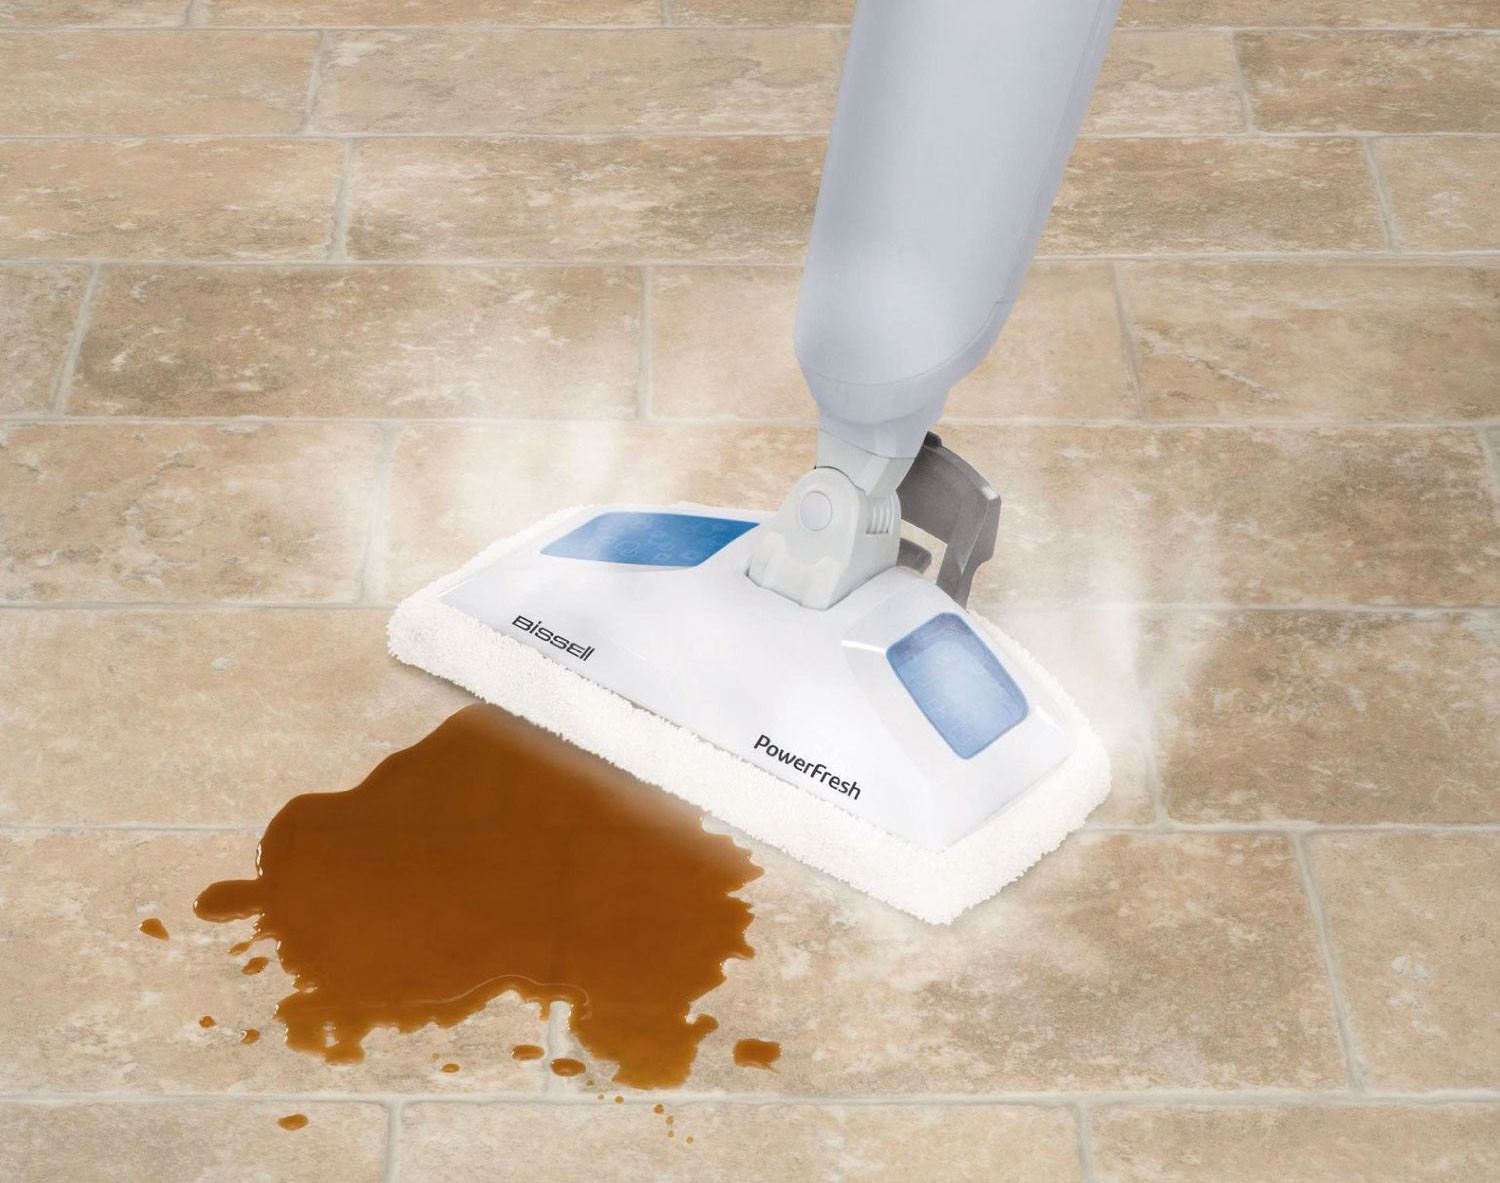 hardwood floor care products review of the 4 best steam mops inside a3e8dac8 fd9f 4940 ad99 8094ad1403c3 811cn2sa0wl sl1500